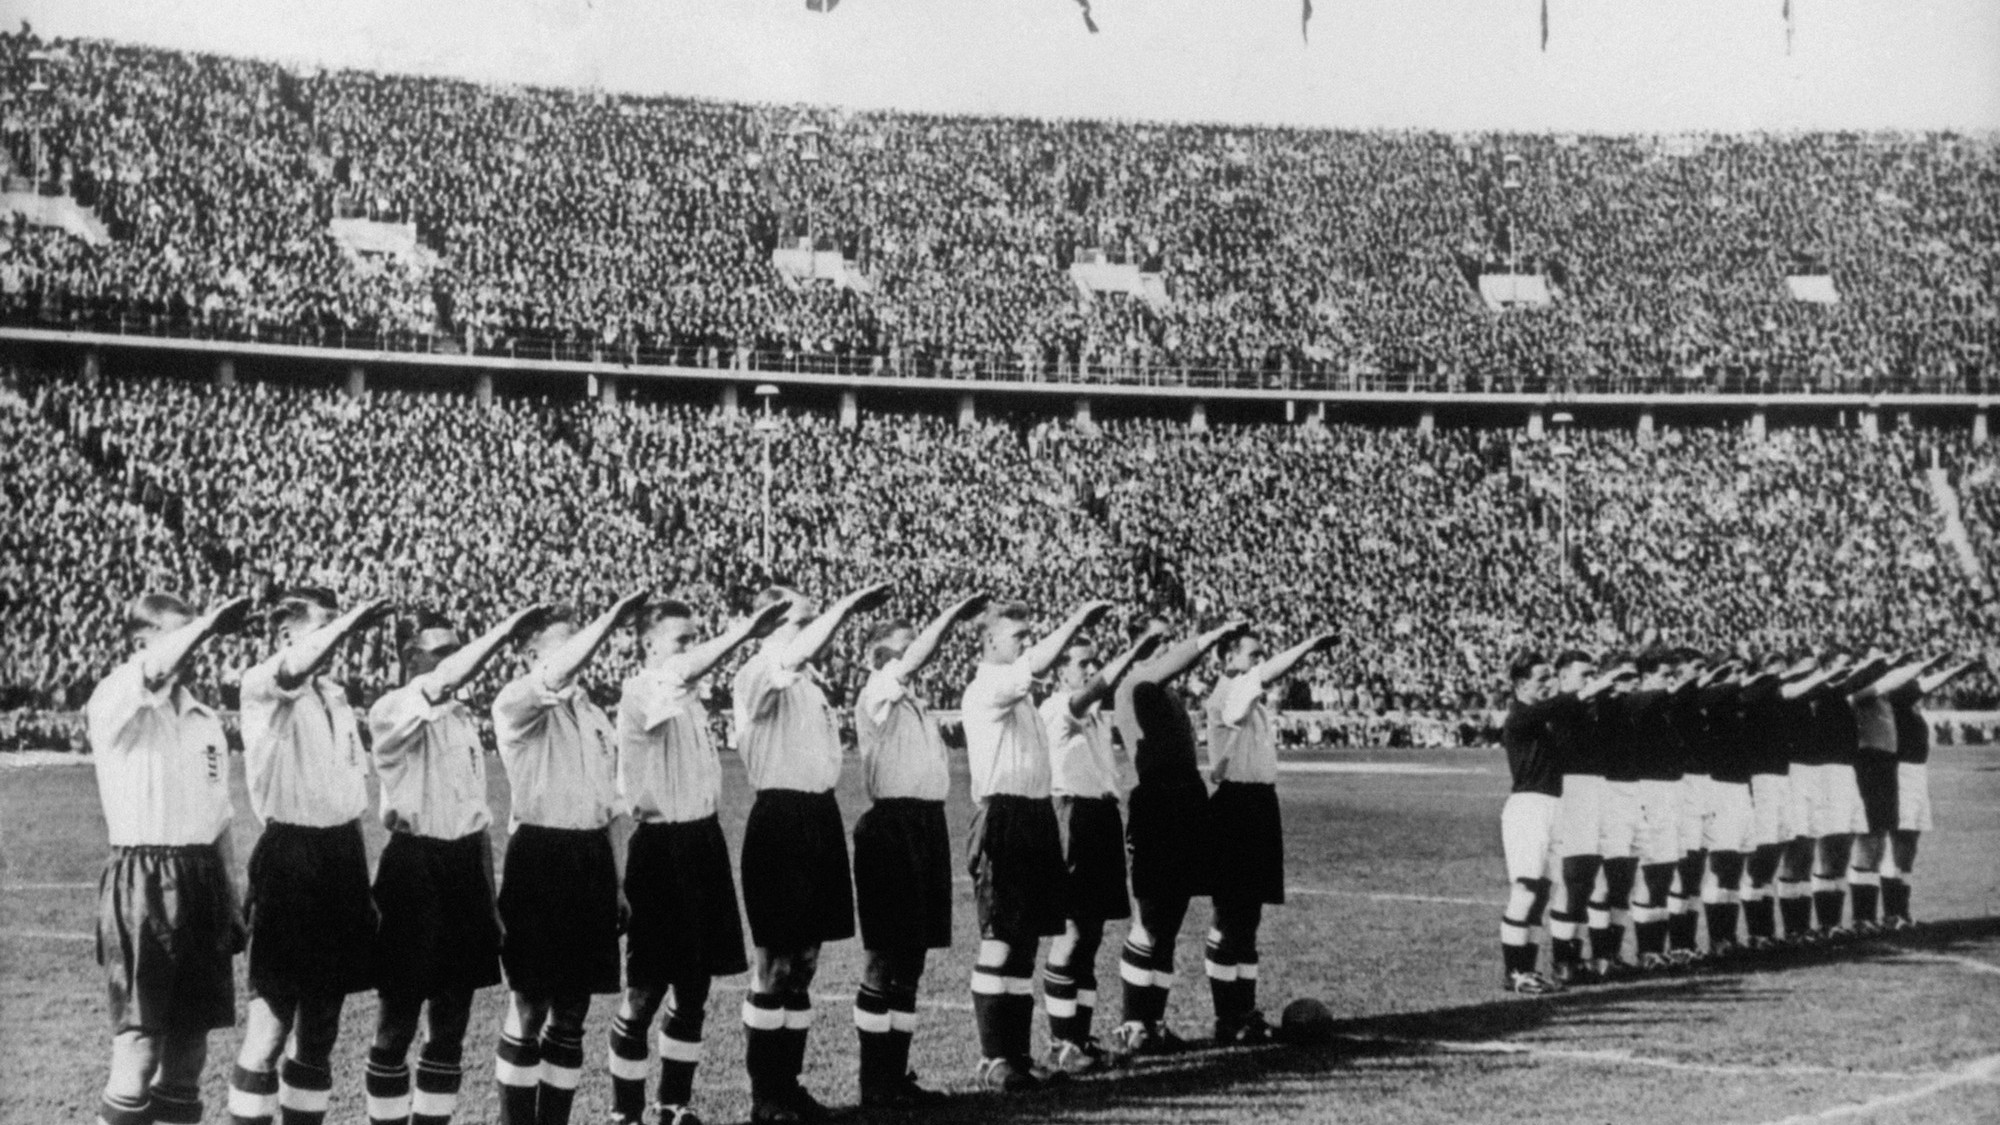 the nazi olympics most controversial sports Games, to be held in the german capital the united states sent the largest foreign delegation to this controversial sports festival and contributed memo- rable olympic moments and heroes, including african american sprinter and long jumper jesse owens, who, by winning four gold medals, exploded the nazi claim of.